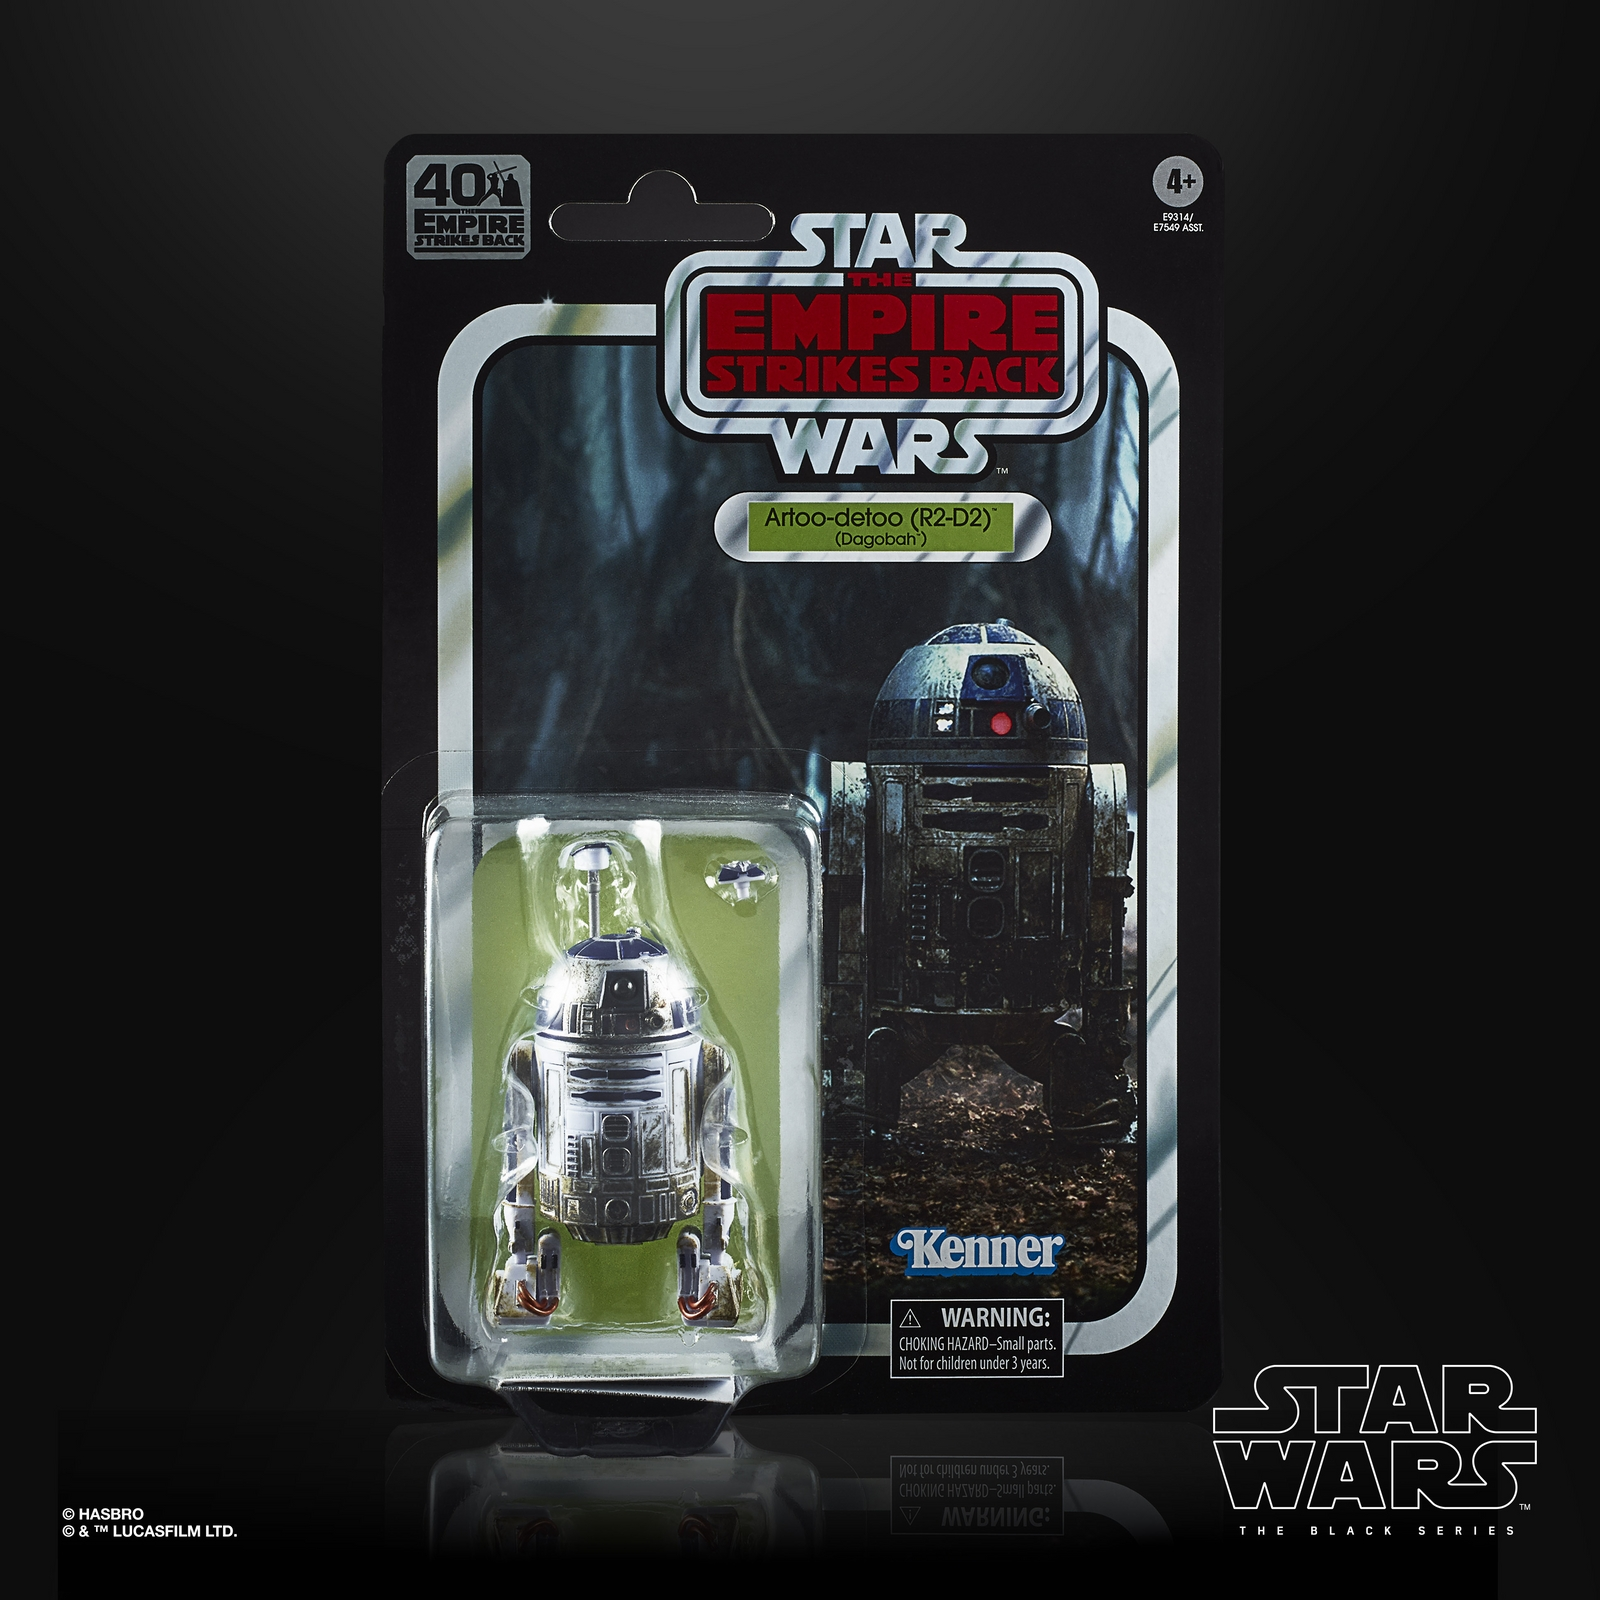 star-wars-the-black-series-40th-anniversary-6-inch-r2-d2-_dagobah_---in-pck.jpg